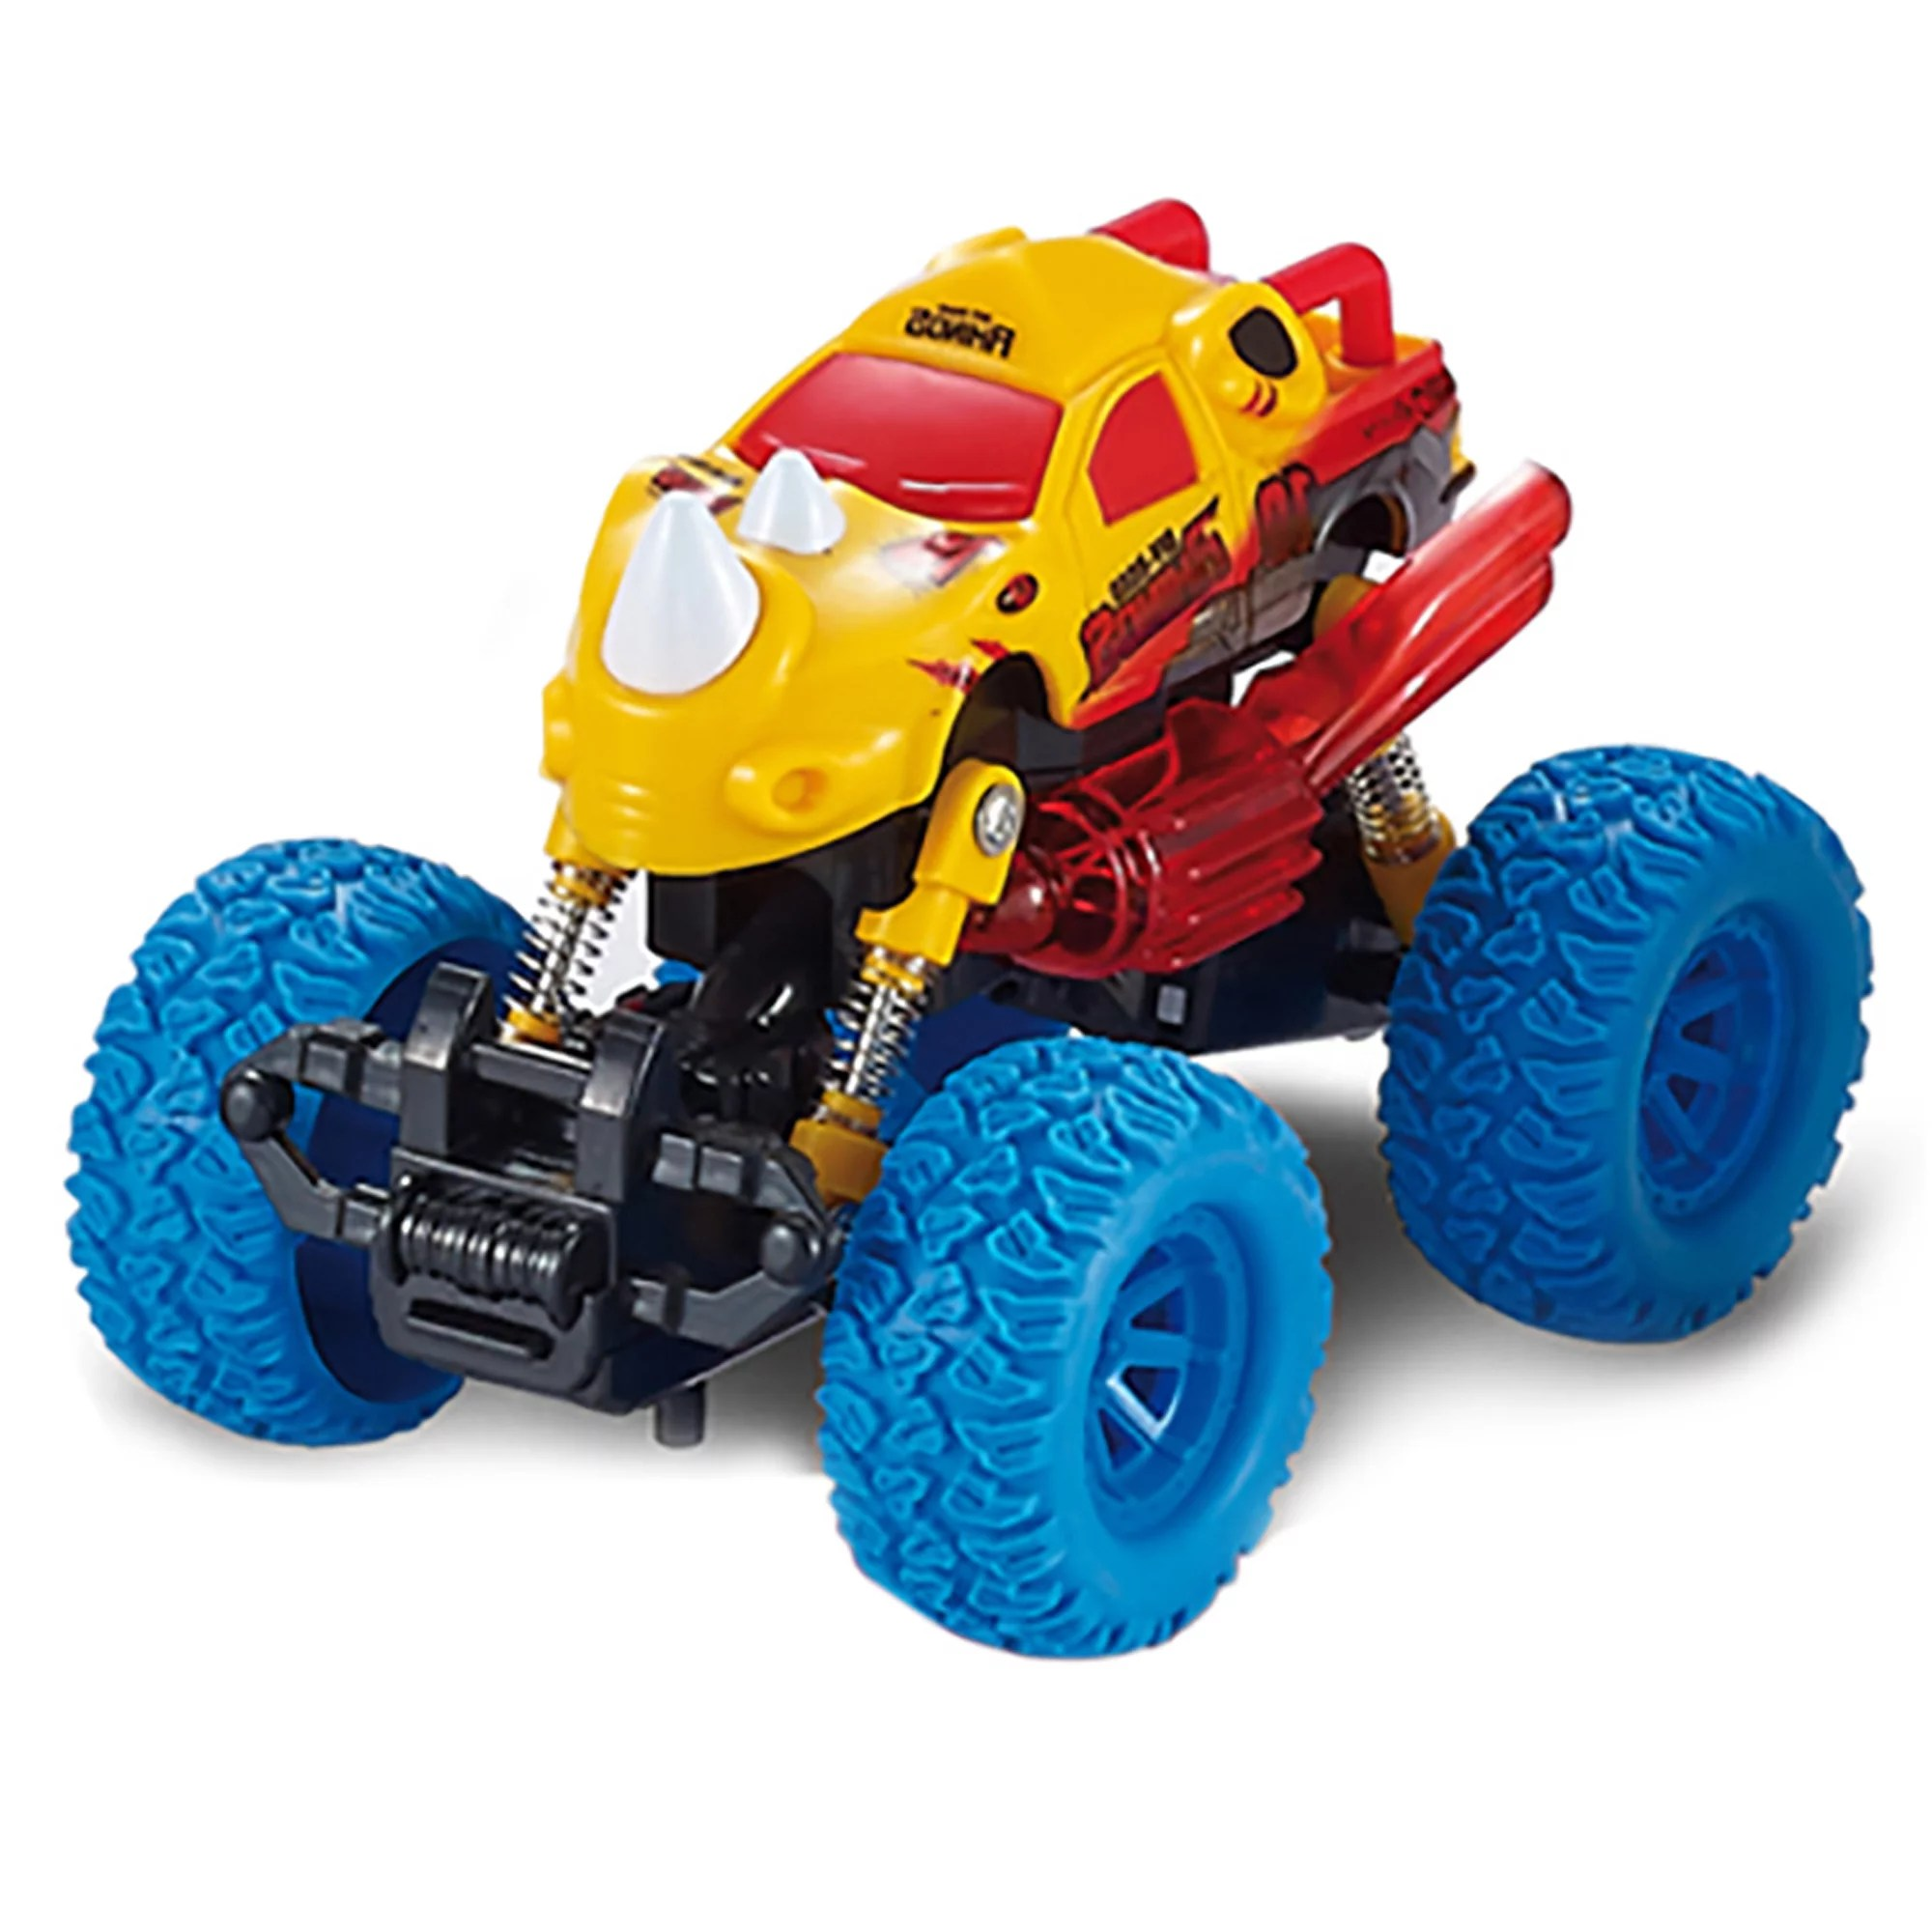 Trucks Car Kids Toys Toddler Vehicle Cool Toy For Boys